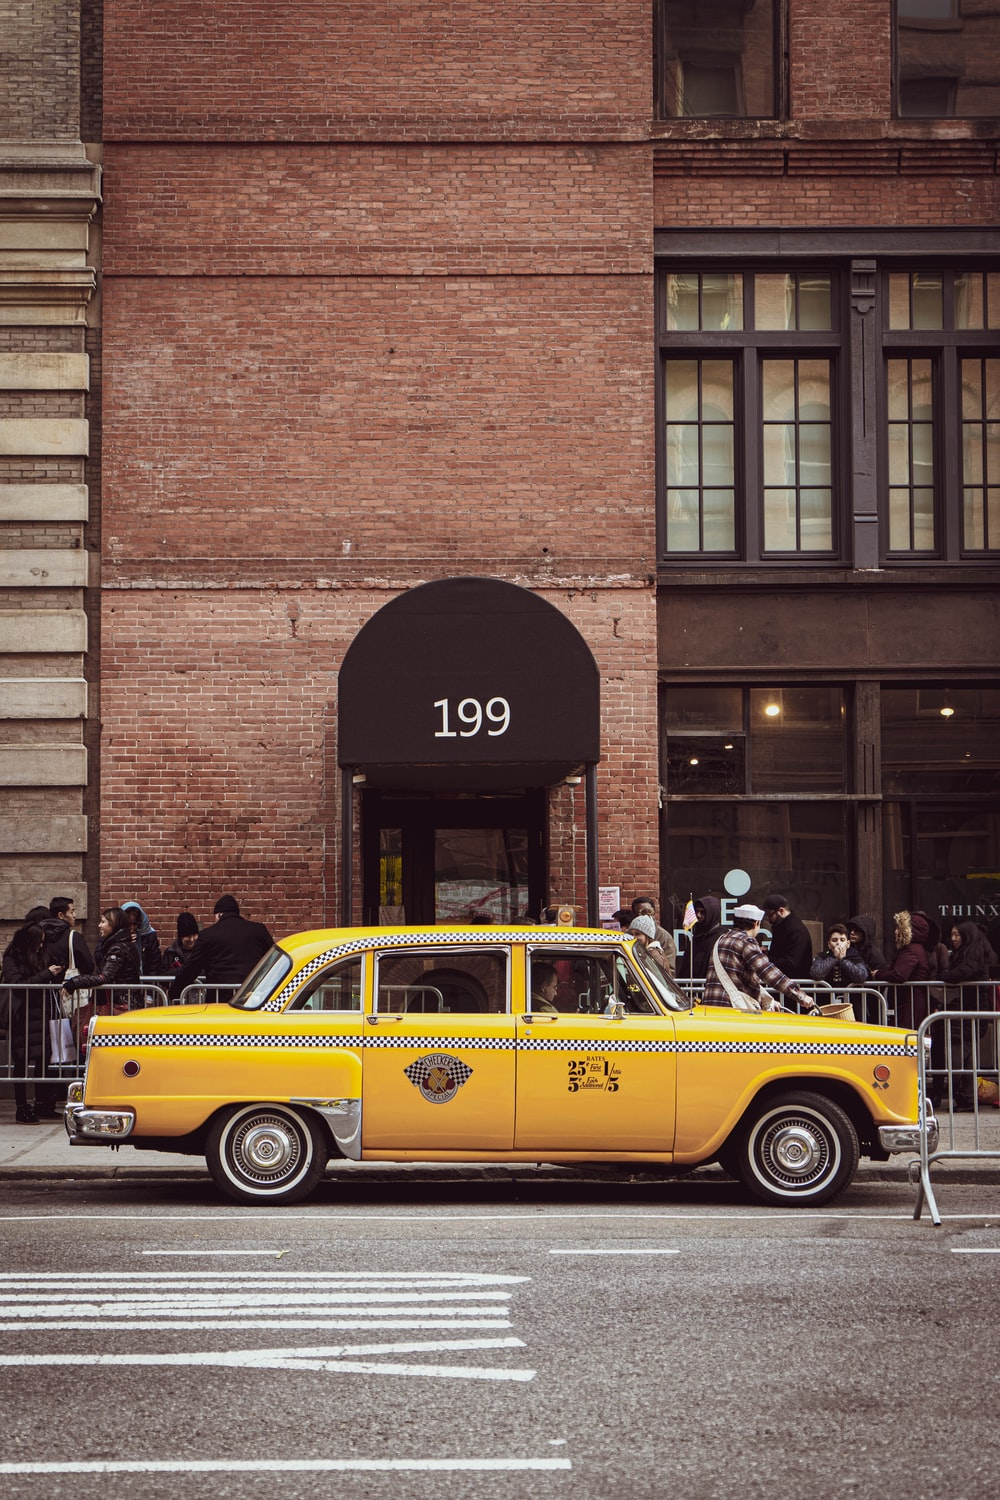 yellow taxi cab parked beside brown brick building